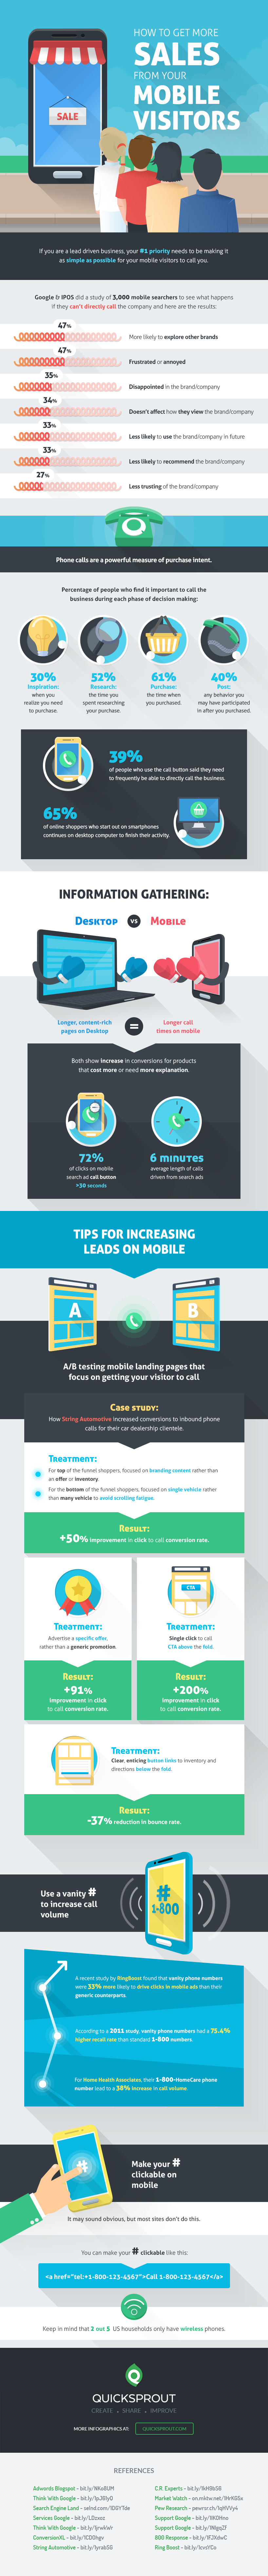 How to Get More Sales From Your Mobile Visitors